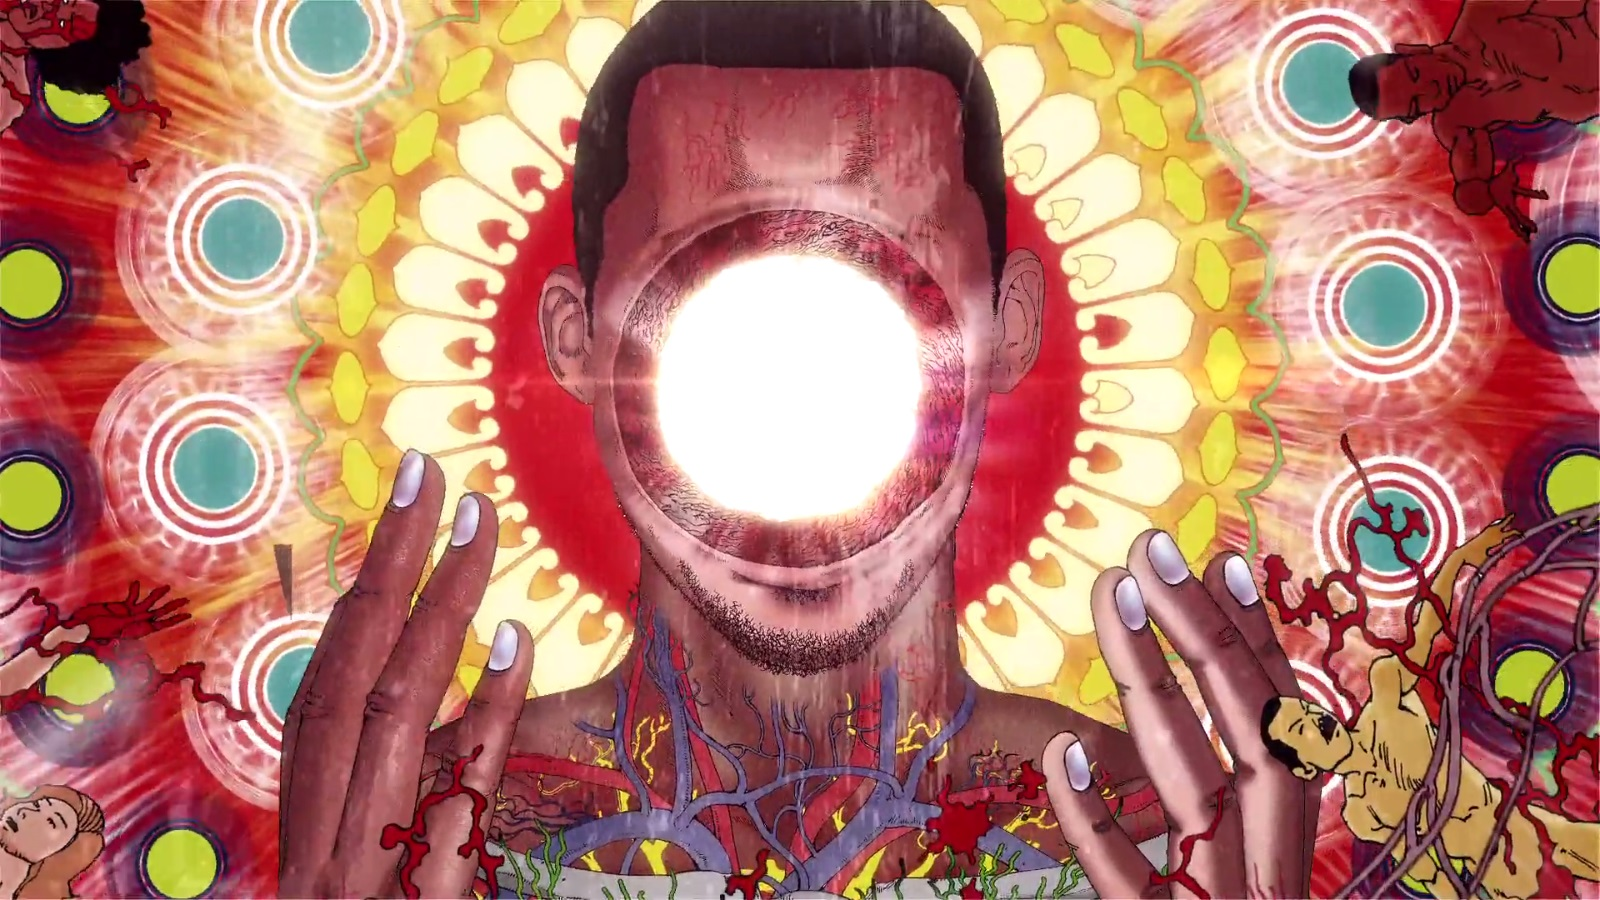 source: Flying Lotus